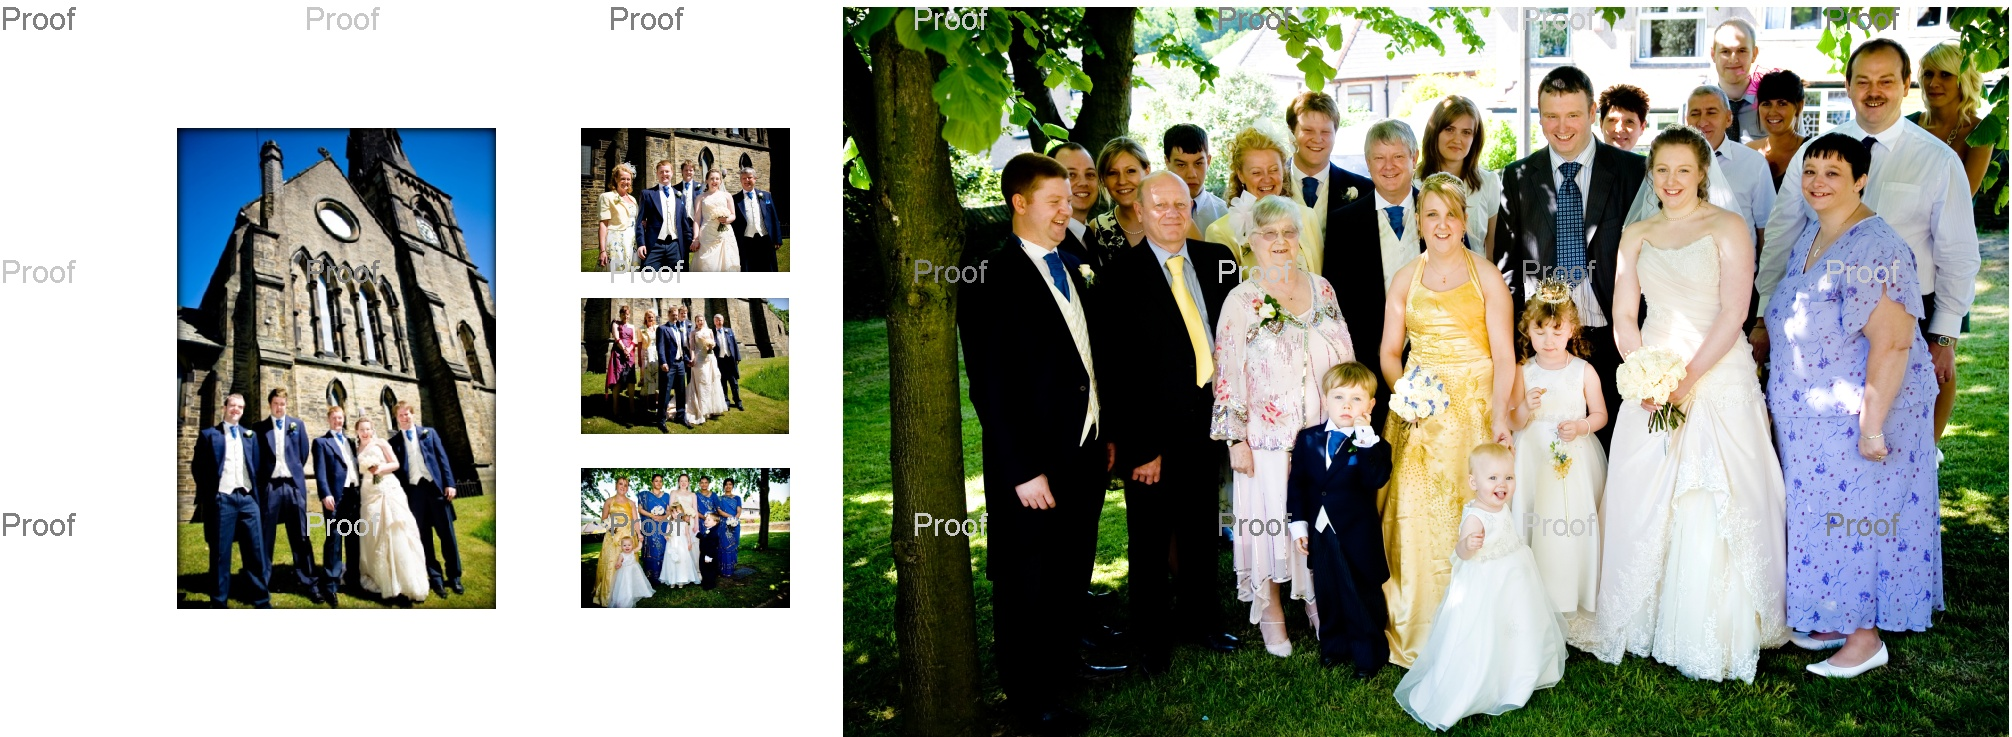 family wedding pictures outside St Marys Church in Wyke.  wedding storybook album pages 24-25